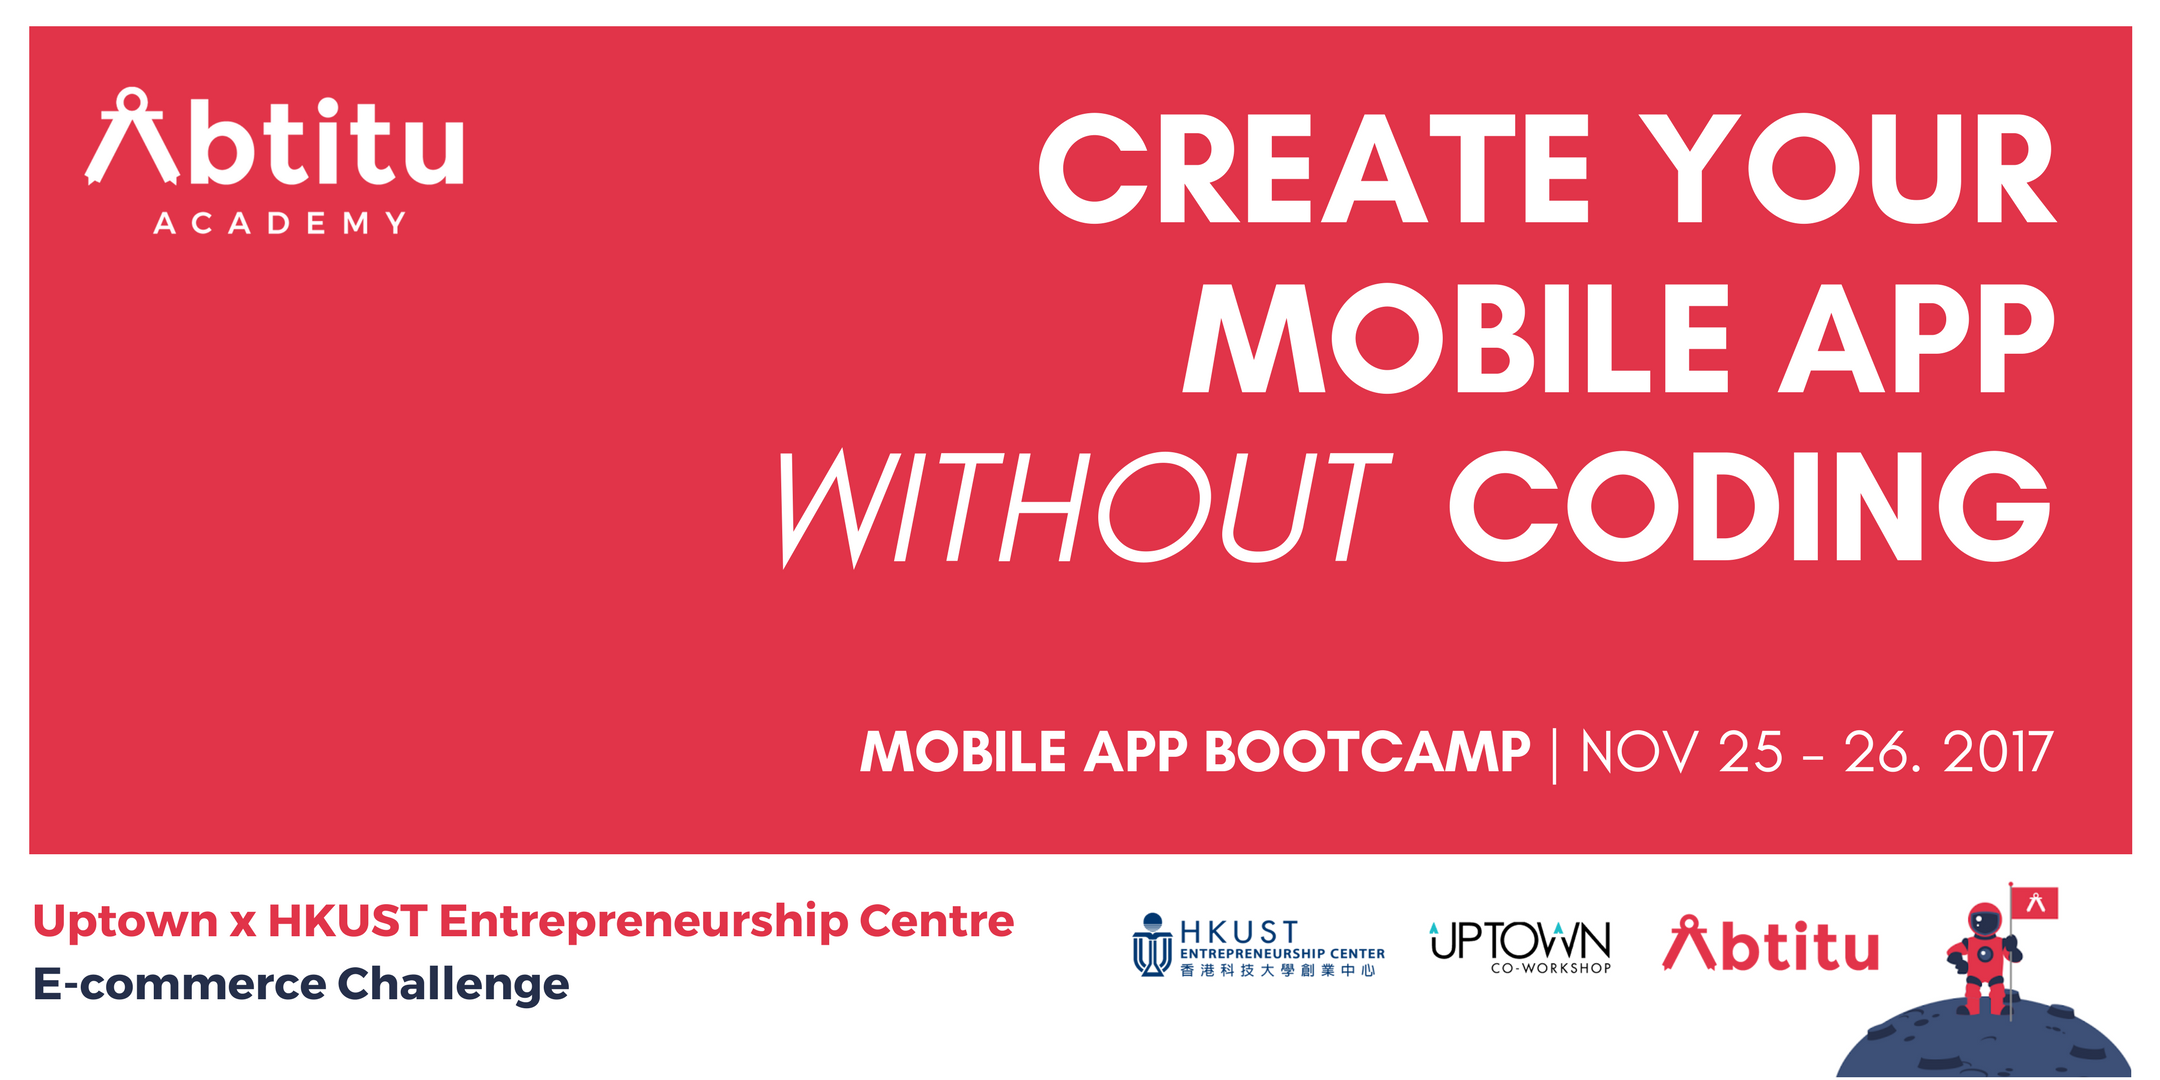 Create Your Mobile App Without Coding - 2 Days Bootcamp